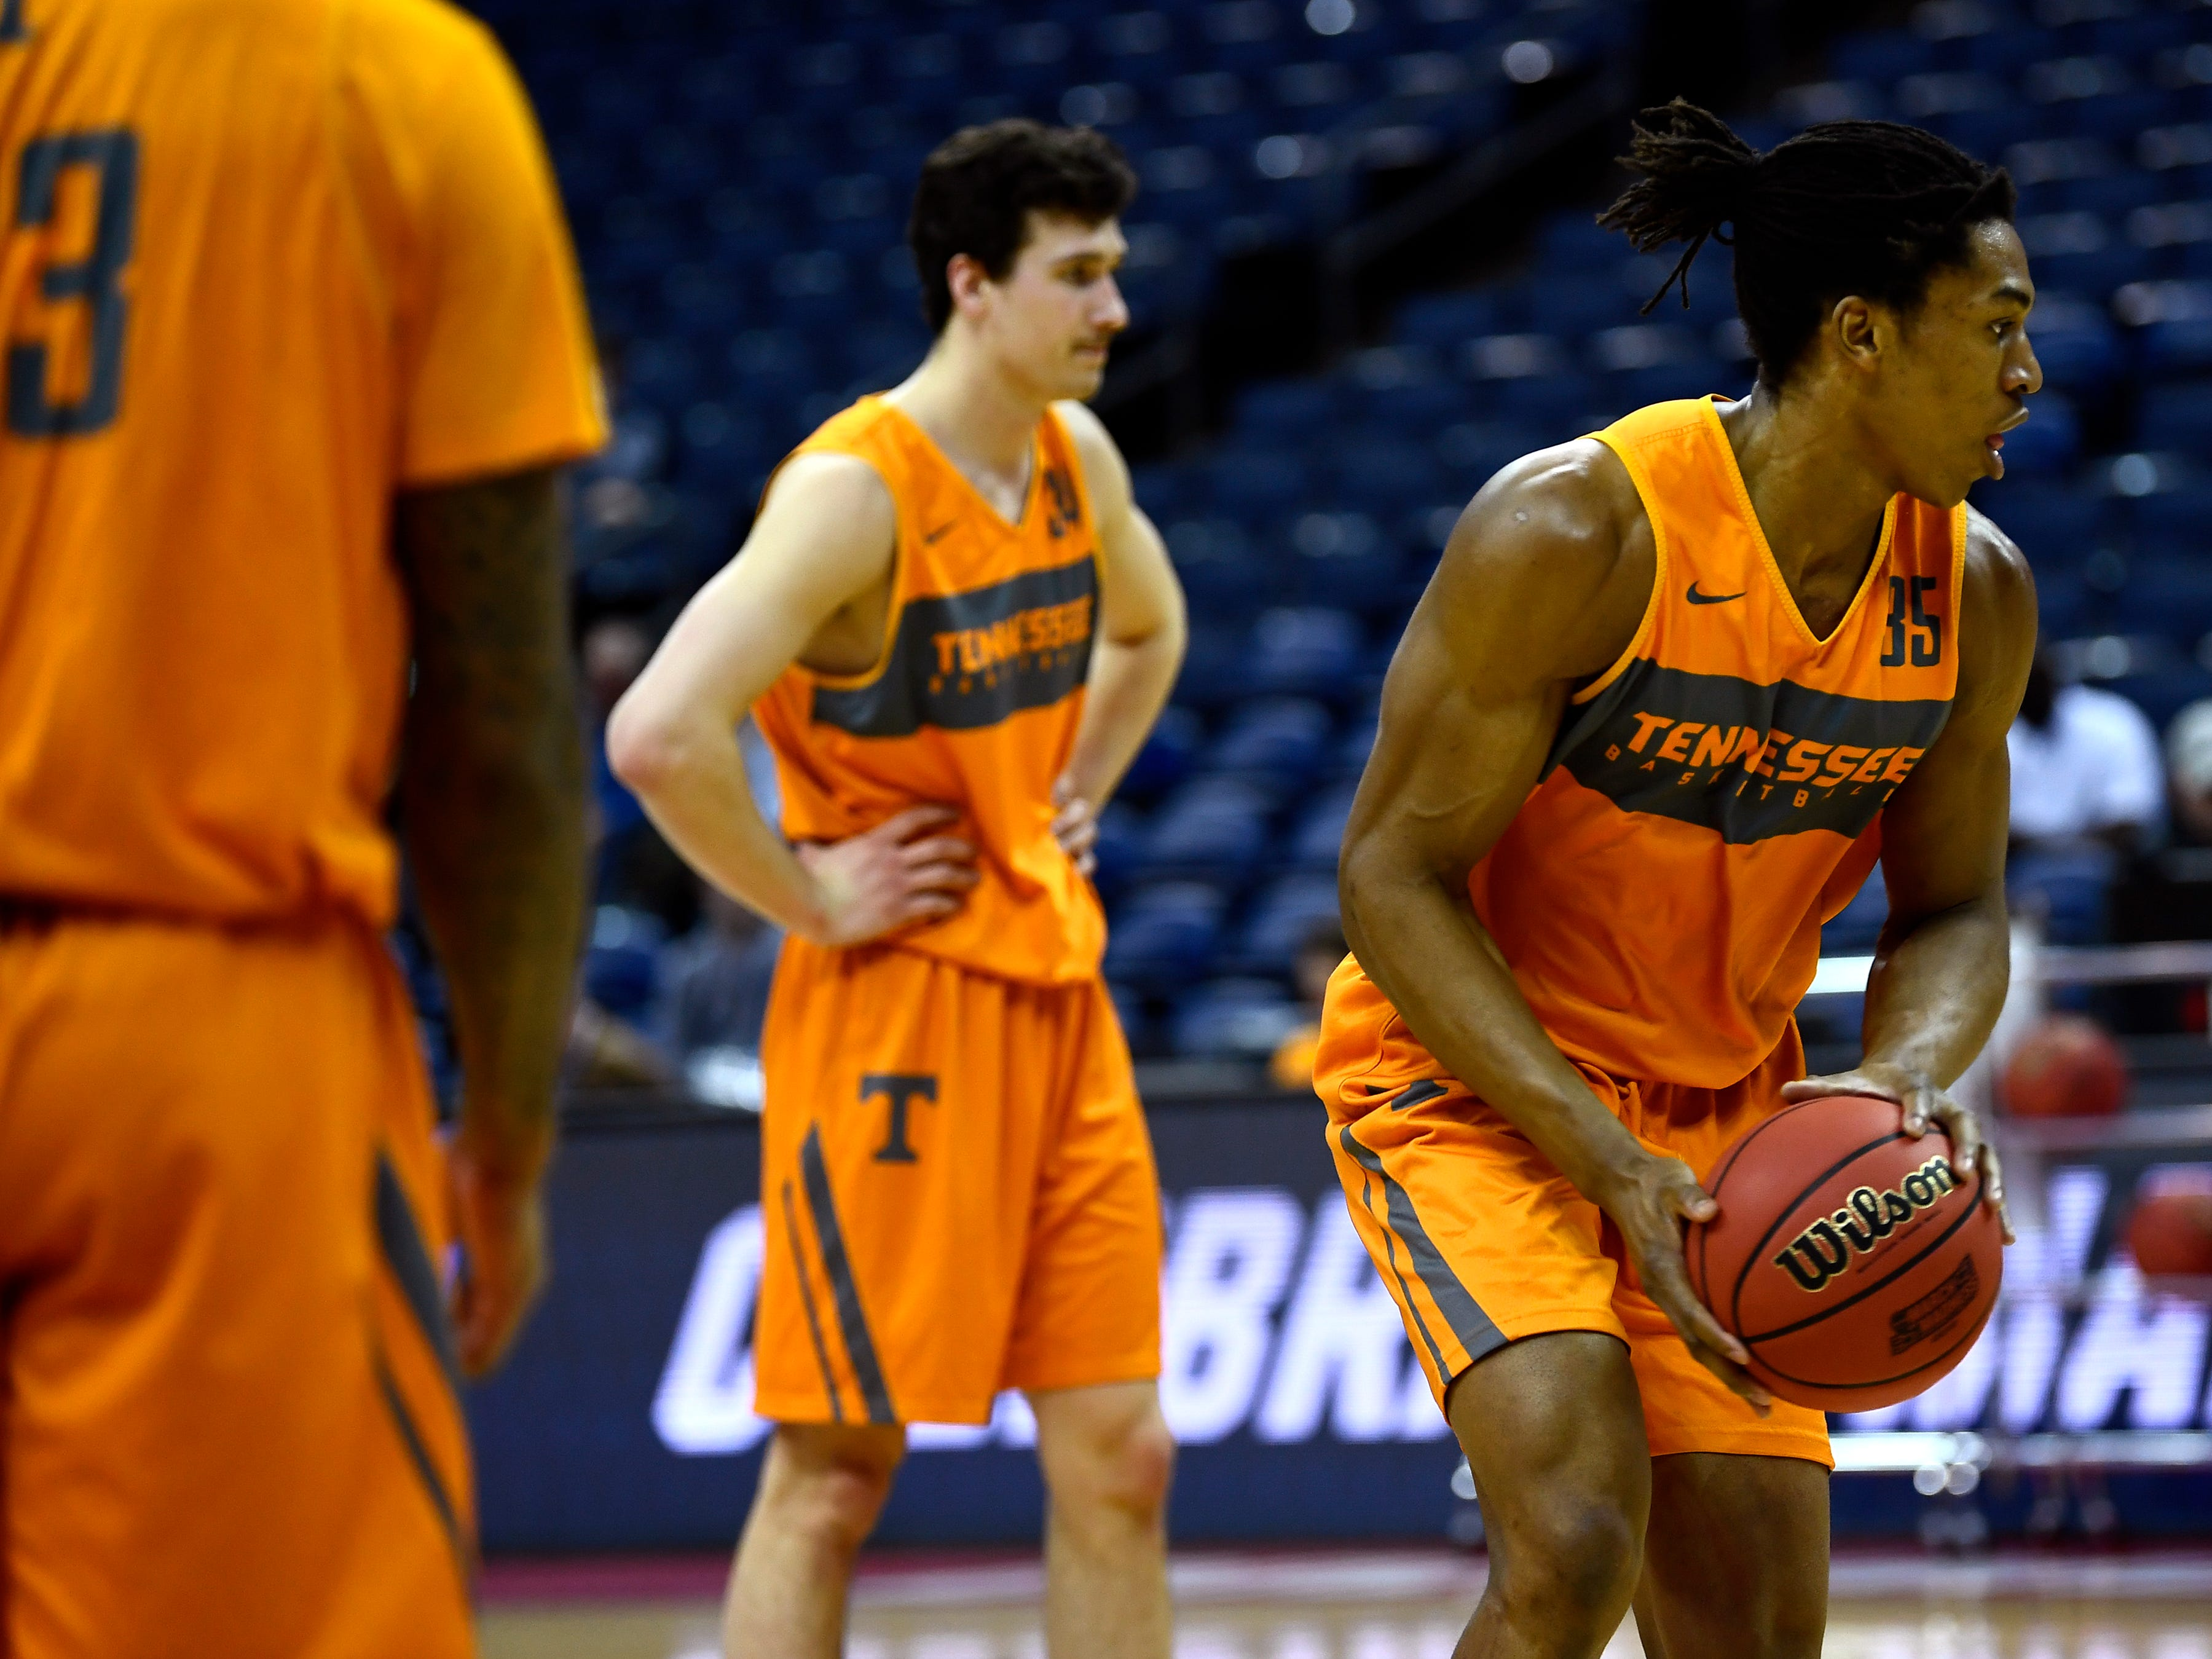 Tennessee guard/forward Yves Pons (35) during Tennessee's practice on Thursday, March 21, 2019, before their first round NCAA Tournament game against Colgate at Nationwide Arena in Columbus, Ohio.